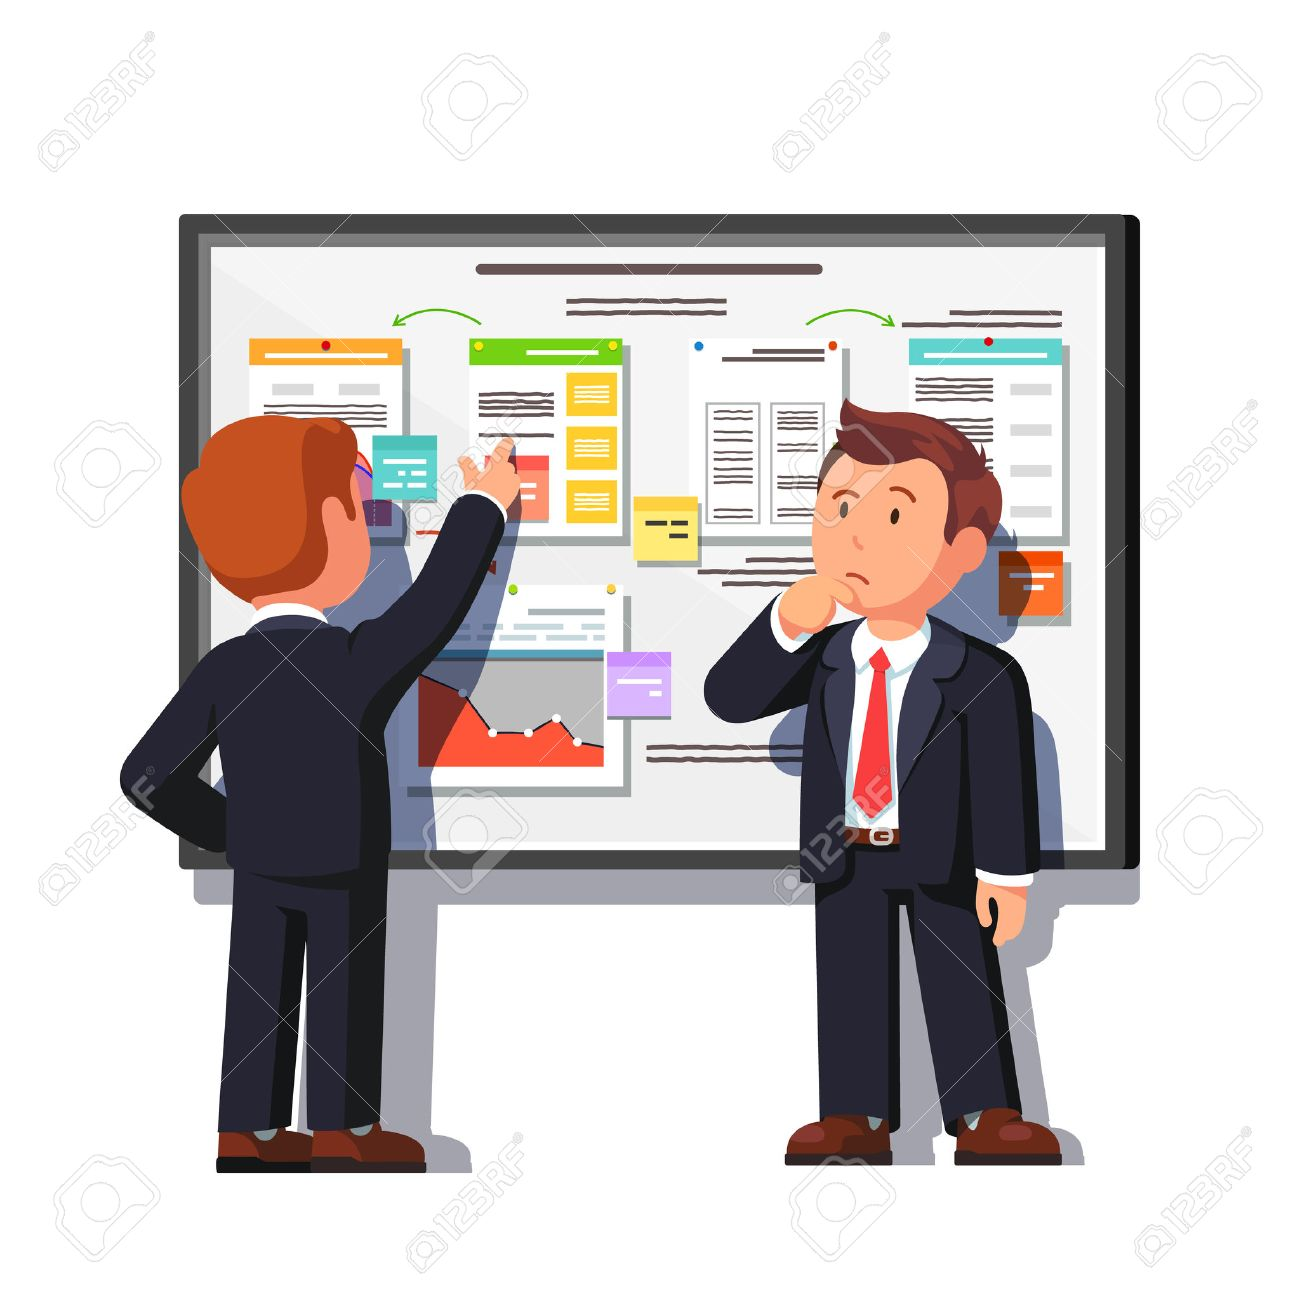 Business consultant showing and explaining project process decomposition diagram on big white board to boss. Flat style vector illustration isolated on white background. - 67658258